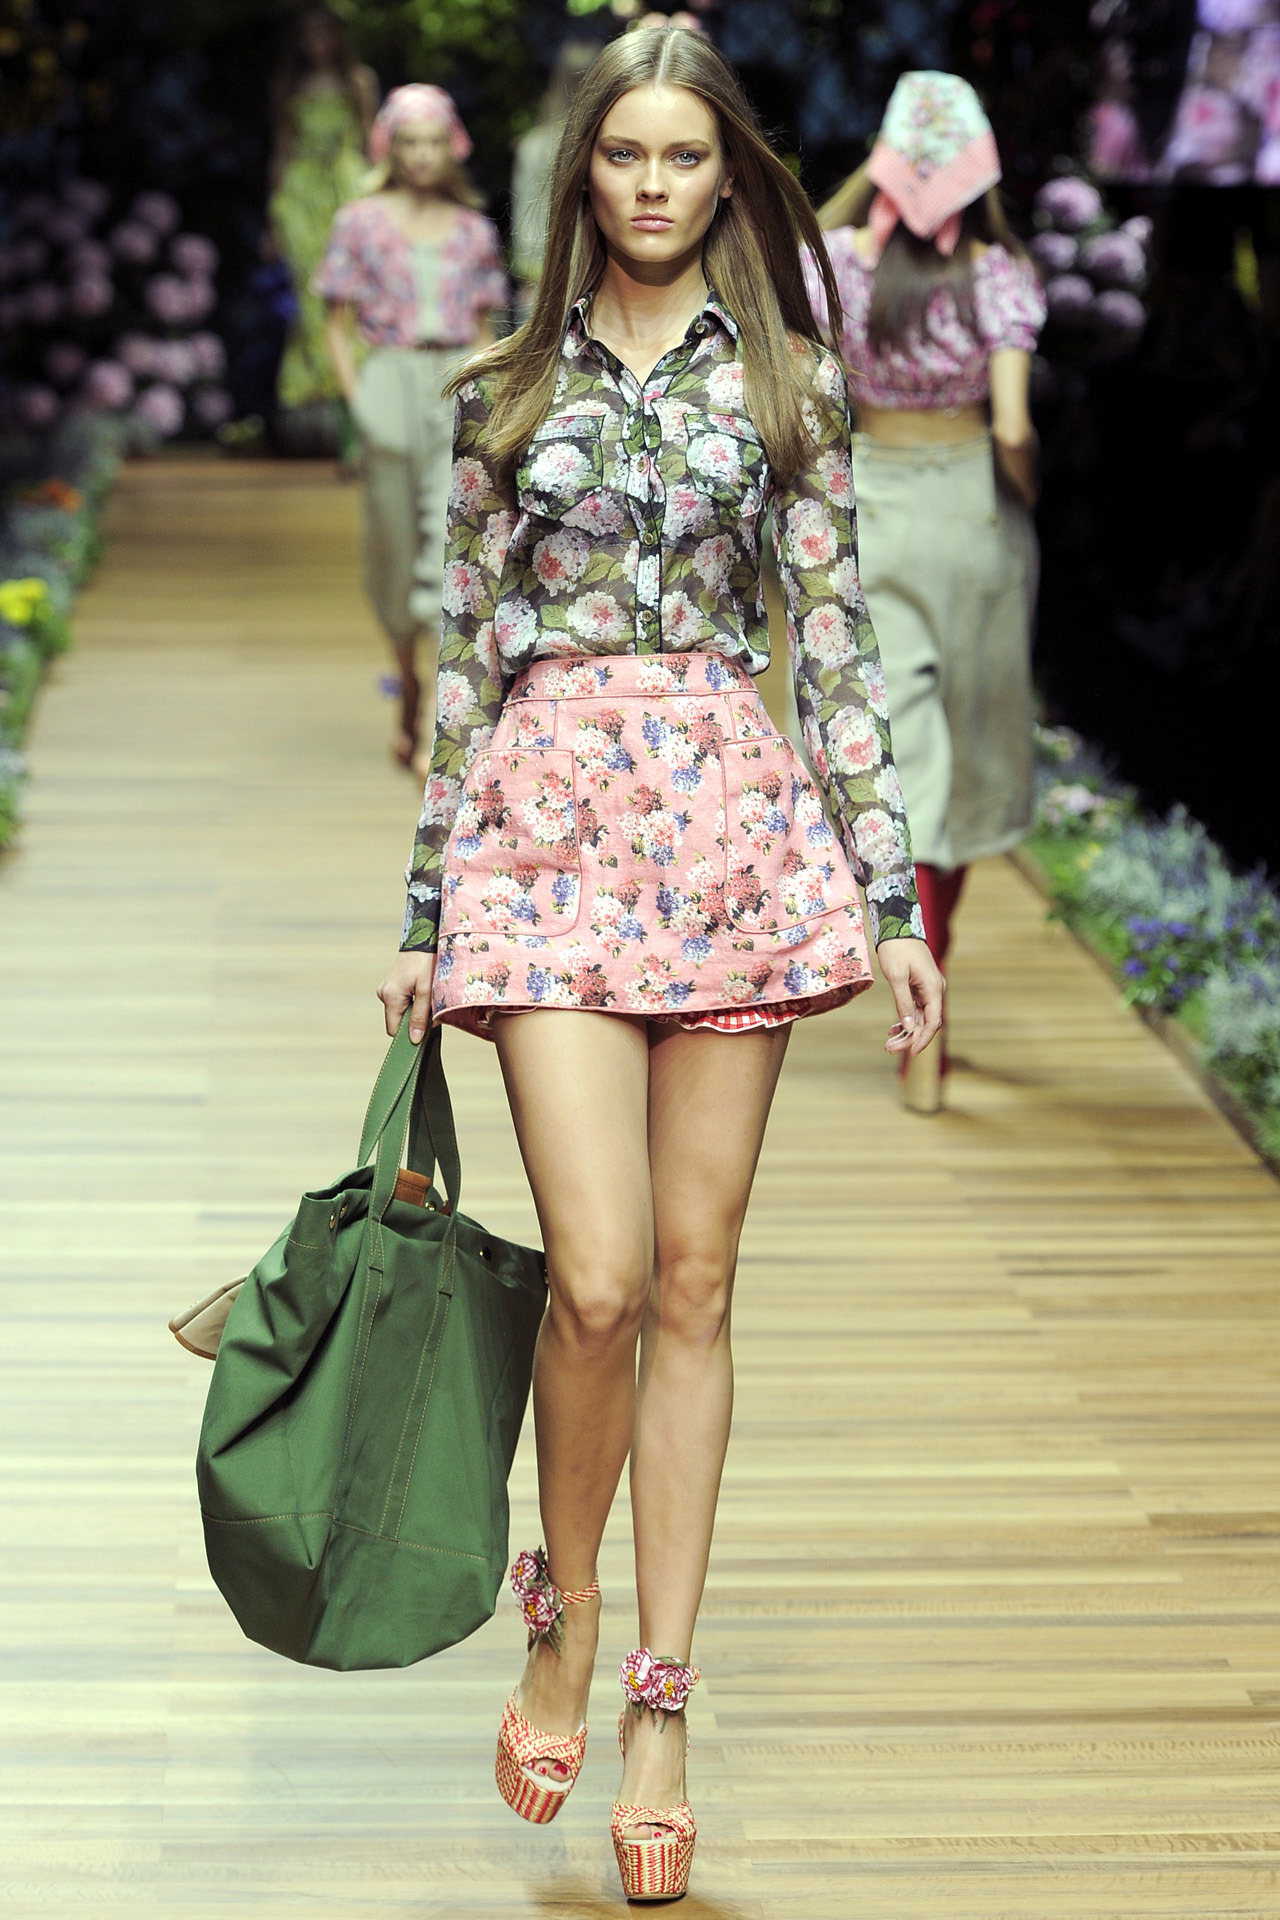 Model: Jac (Monika Jagaciak) - for D&G Spring 2011